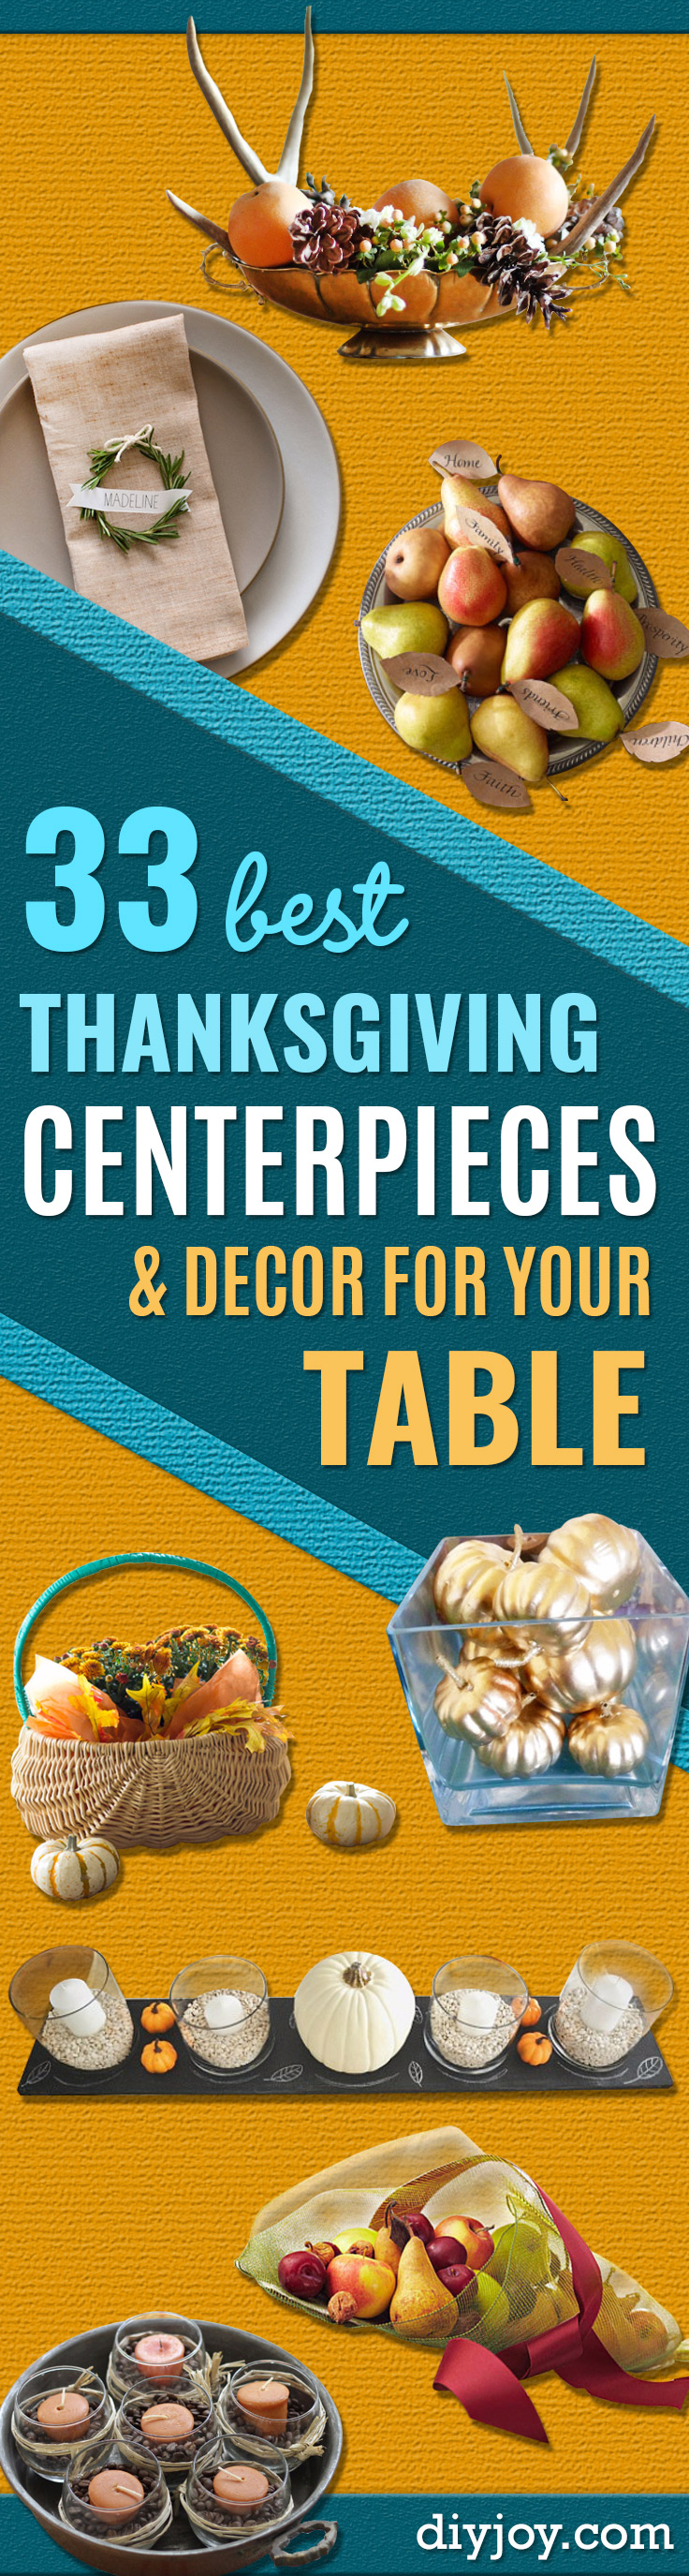 Best Thanksgiving Centerpieces and Table Decor - Creative Crafts for Your Thanksgiving Dinner Table. Mason Jars, Flowers, Leaves, Candles and Pumkin Decorations for Your FallHome Decor http://diyjoy.com/best-thanksgiving-centerpieces